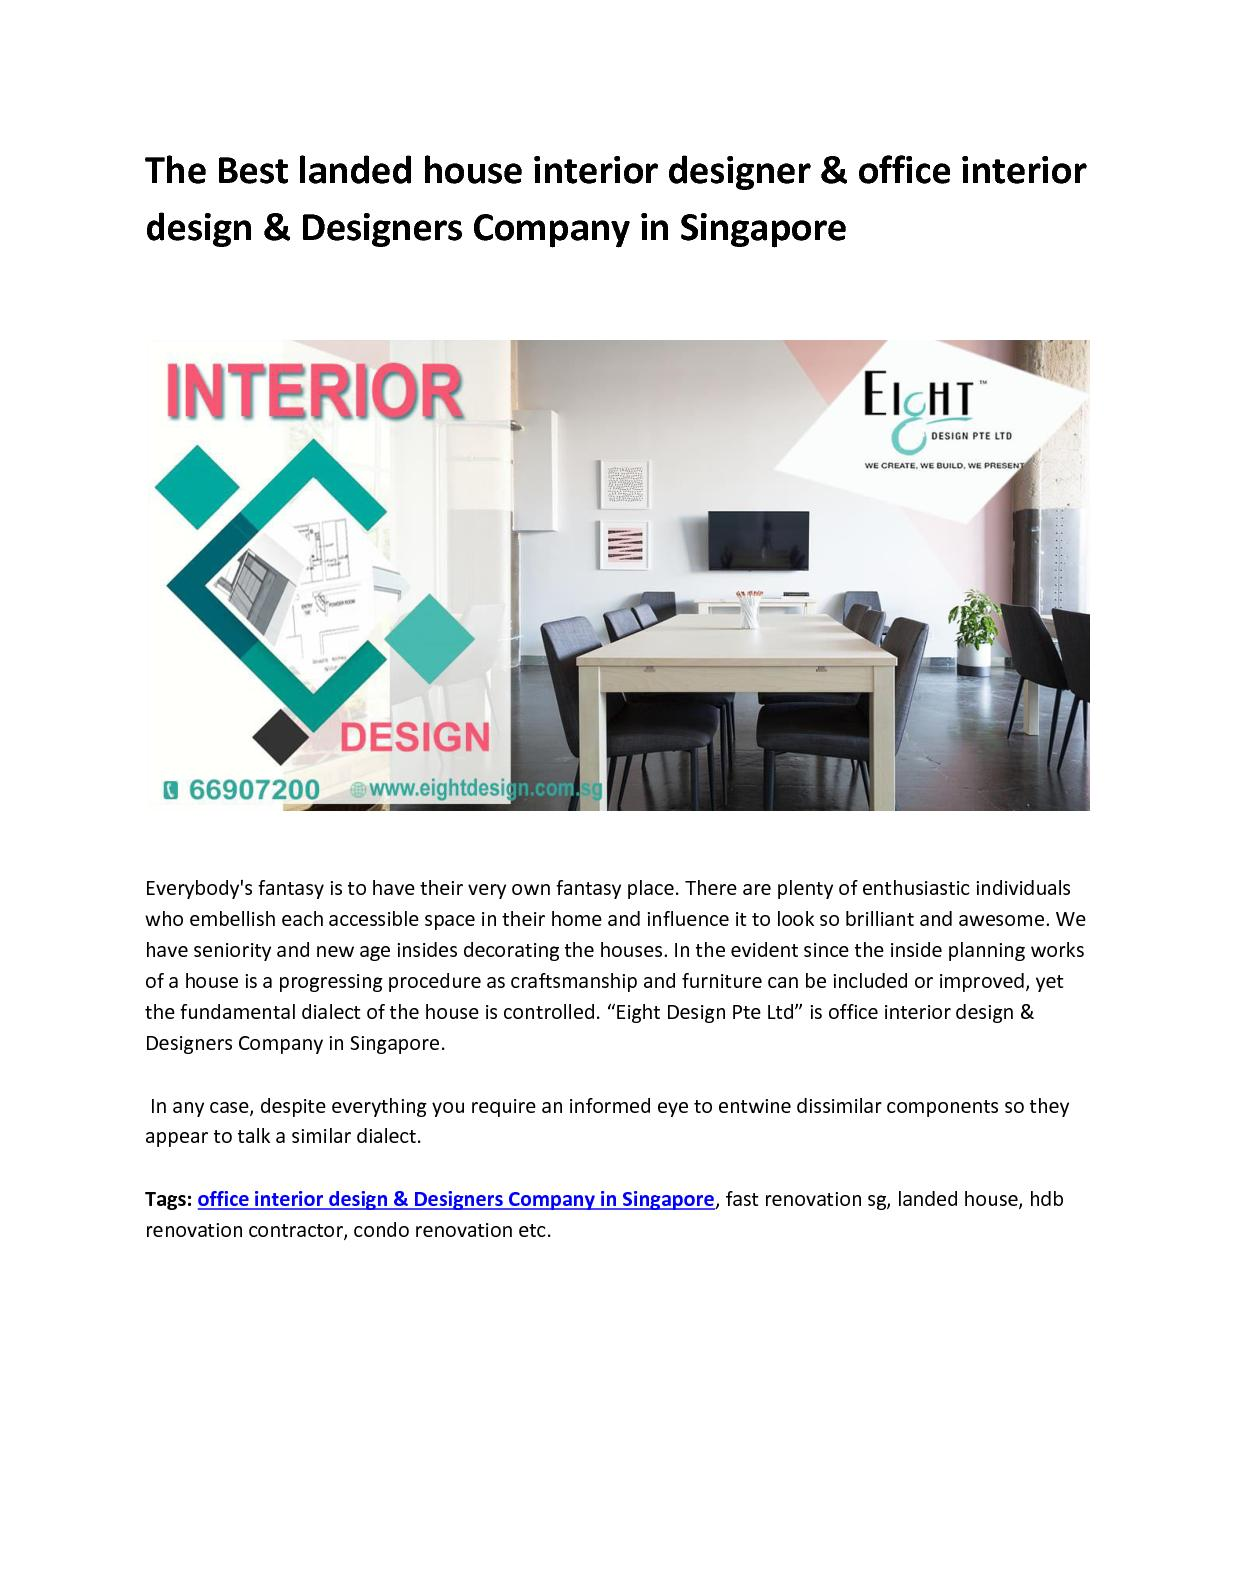 Calameo The Best Landed House Interior Designer Office Interior Design Designers Company In Singapore